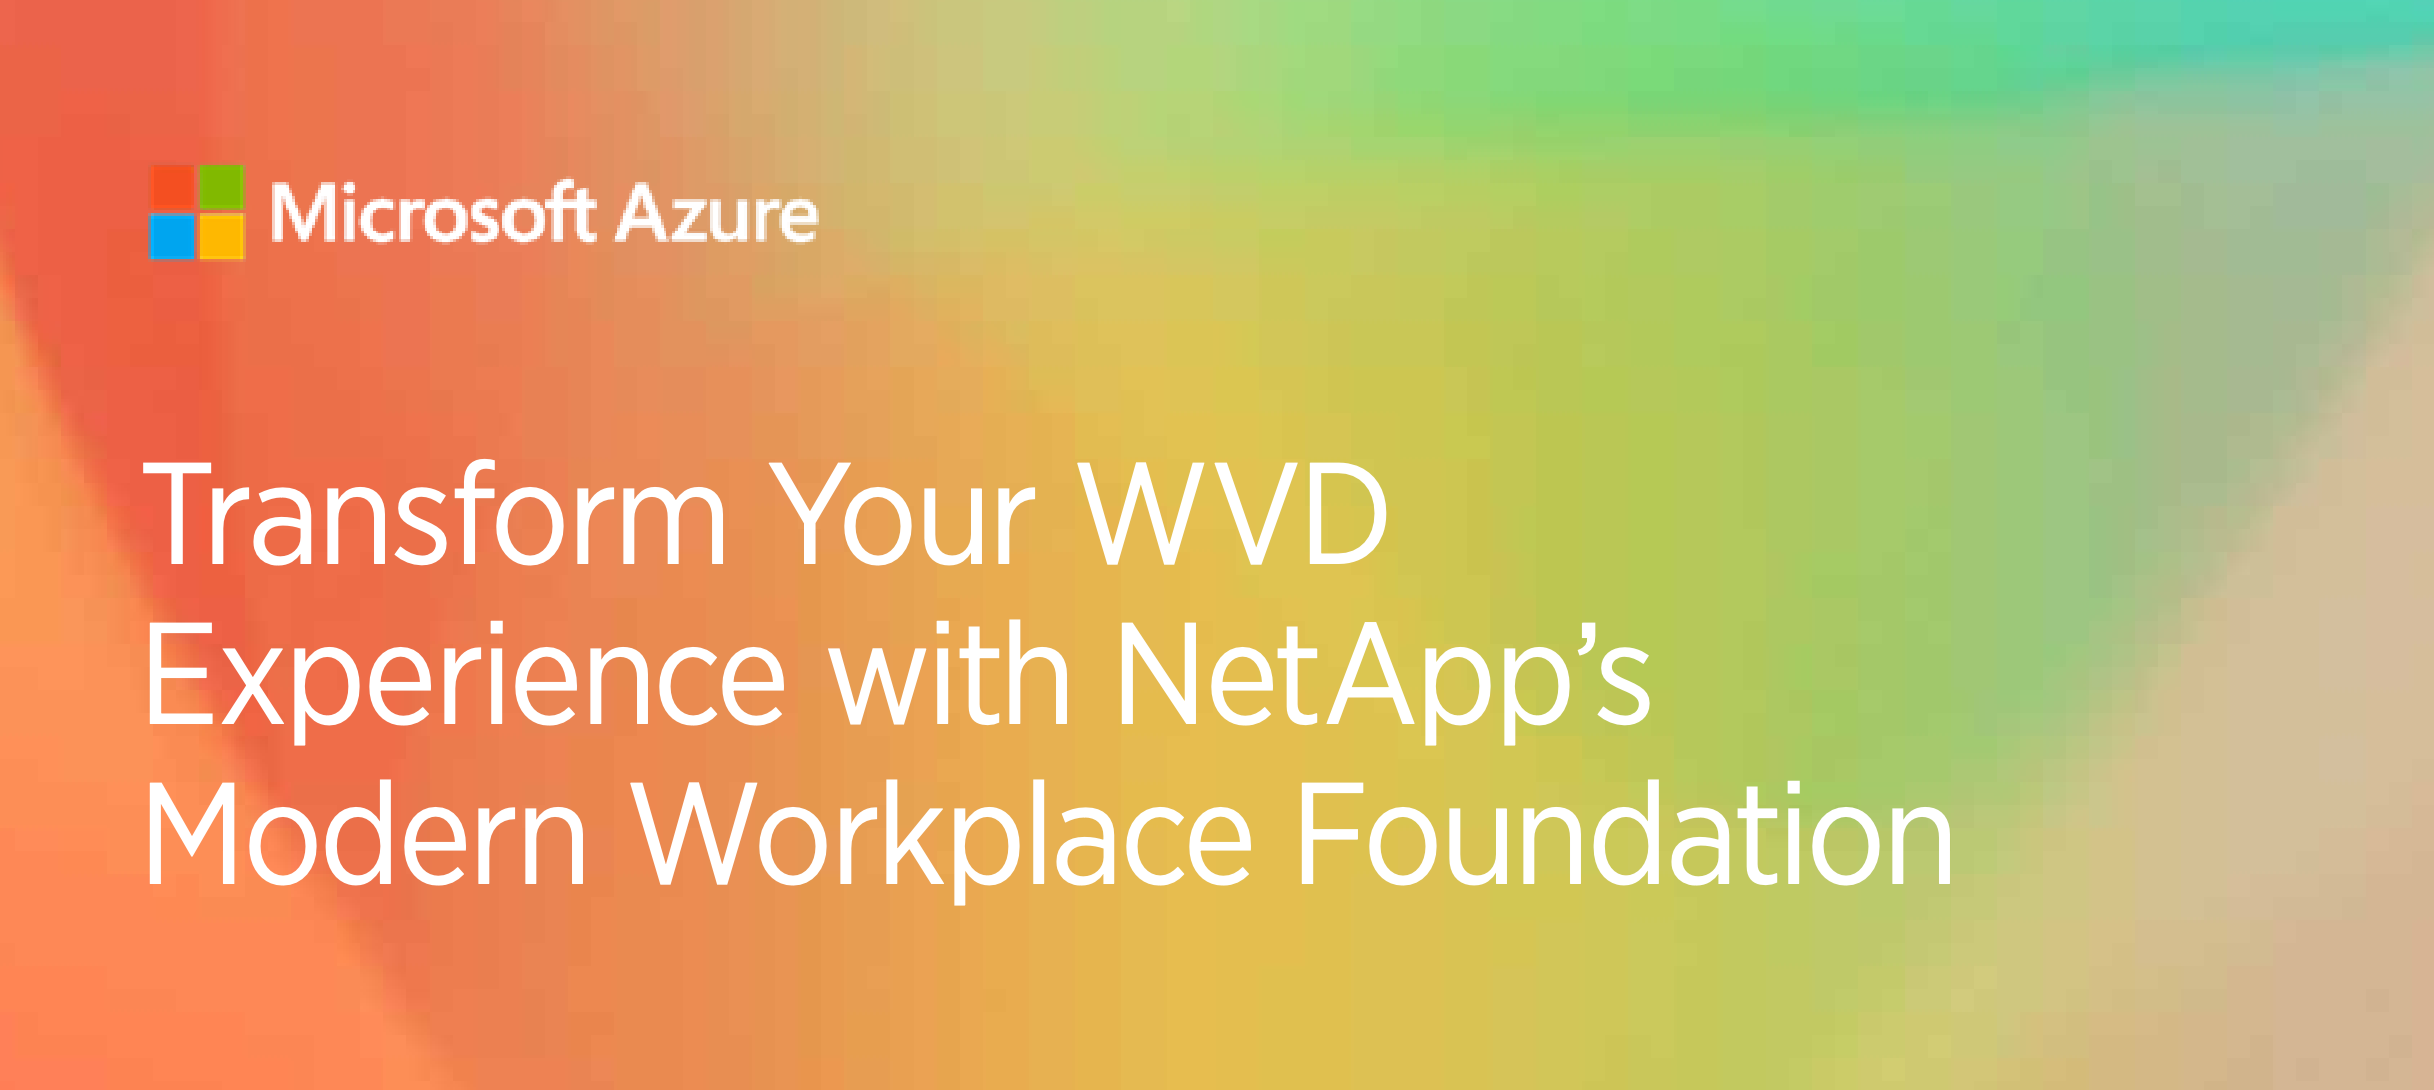 Transform your WVD Experience with NetApps Modern Workplace foundation